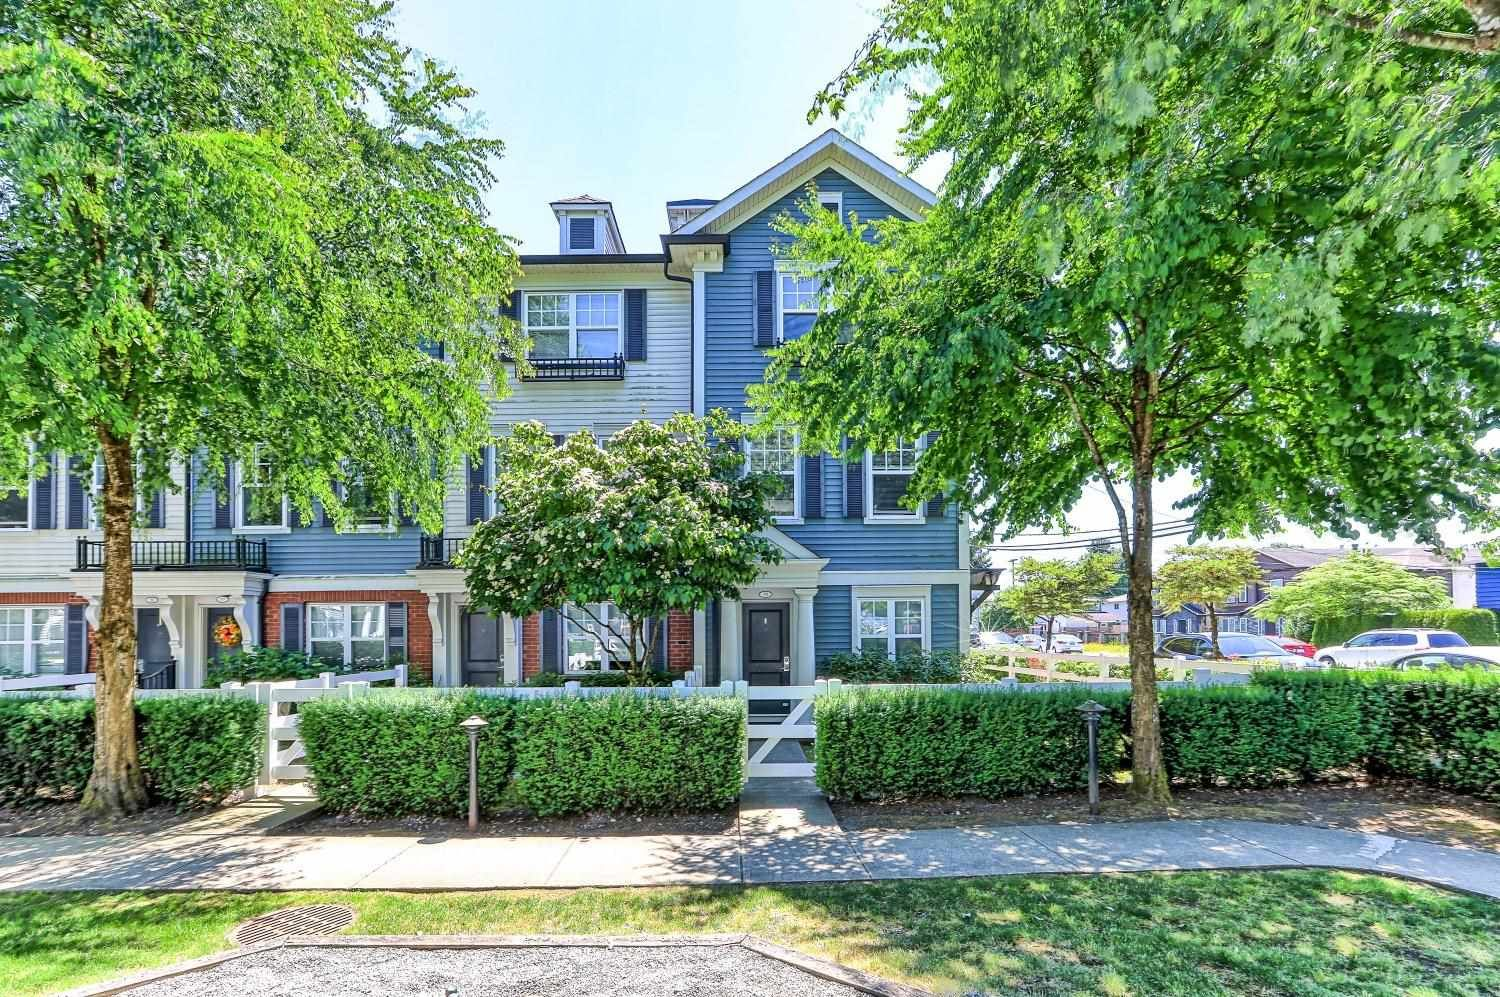 Main Photo: 55 2495 DAVIES Avenue in Port Coquitlam: Central Pt Coquitlam Townhouse for sale : MLS®# R2596322